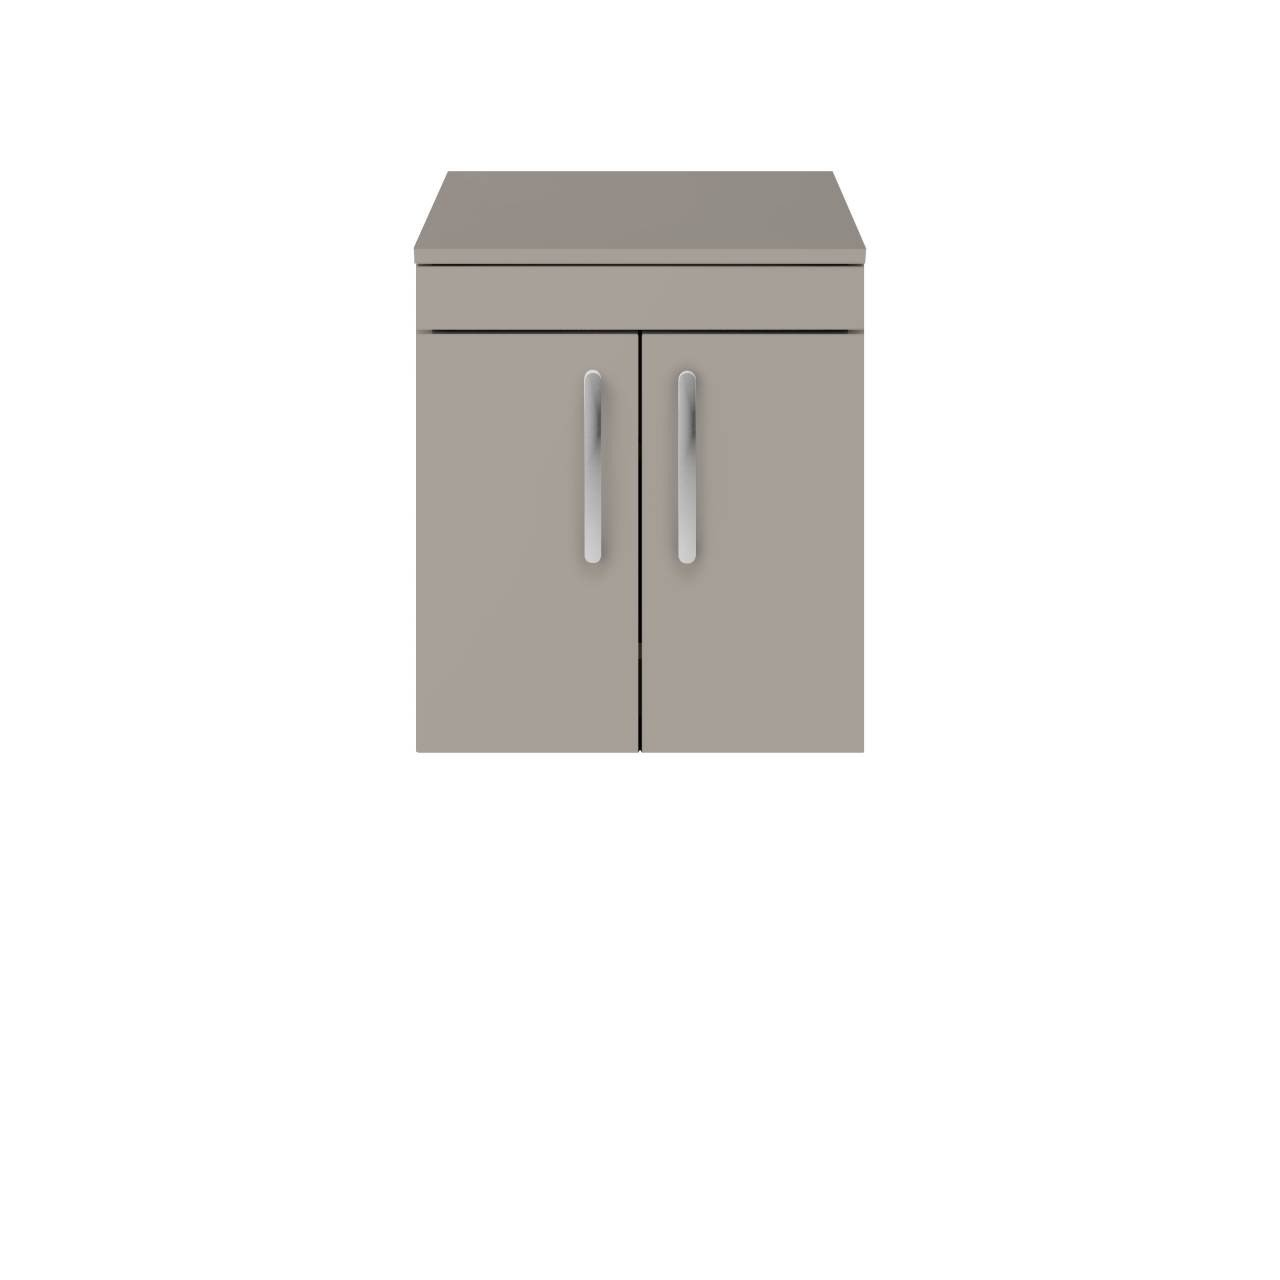 Premier Athena Stone Grey 500mm Wall Hung 2 Door Vanity Unit with Worktop - ATH083W